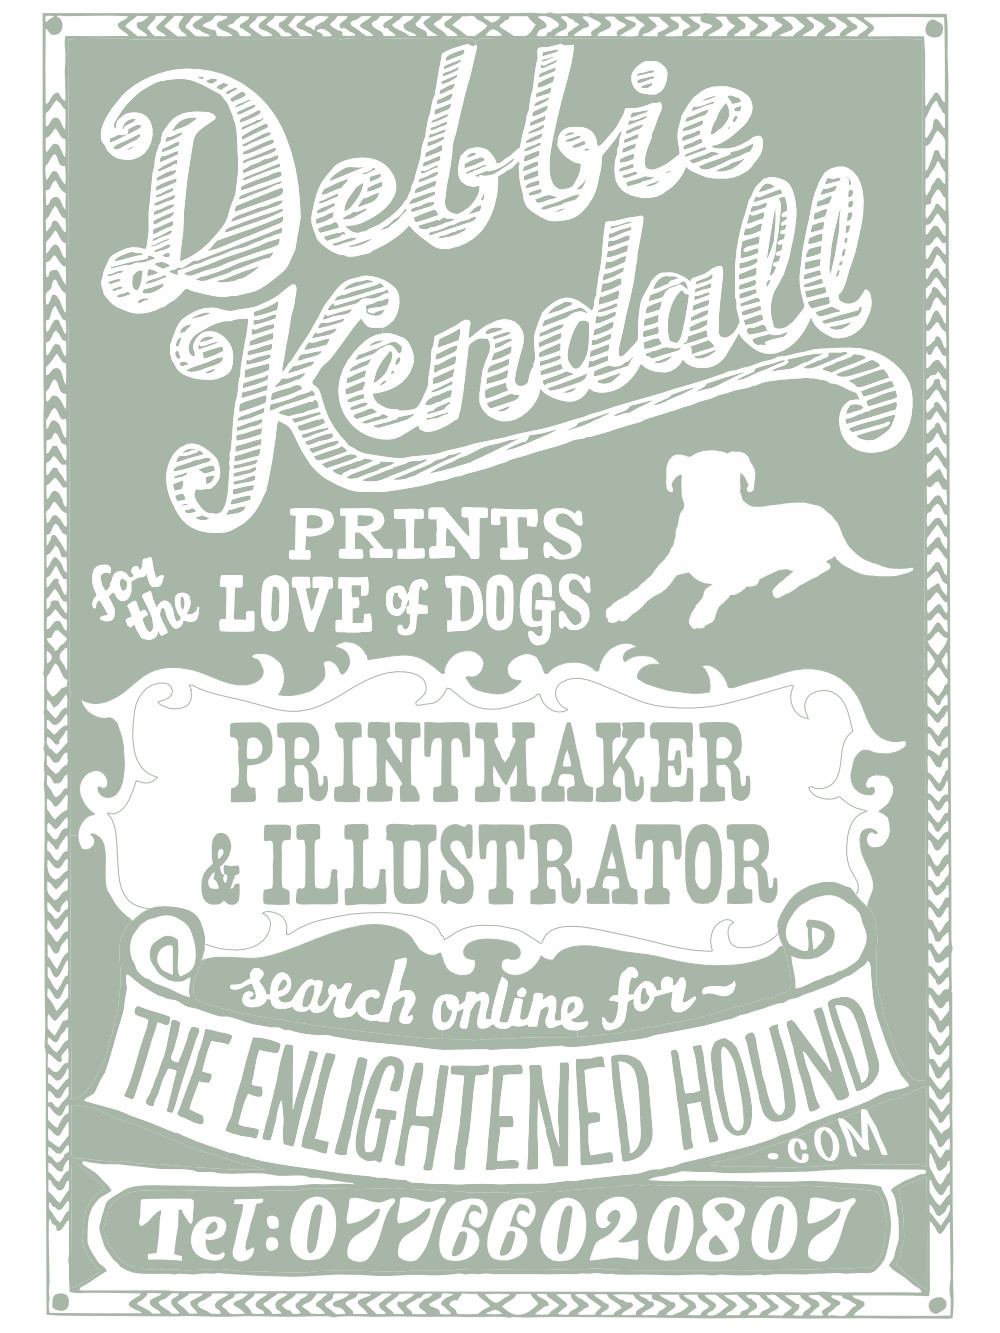 Hand Drawn Illustration Lettering Design | The Enlightened Hound